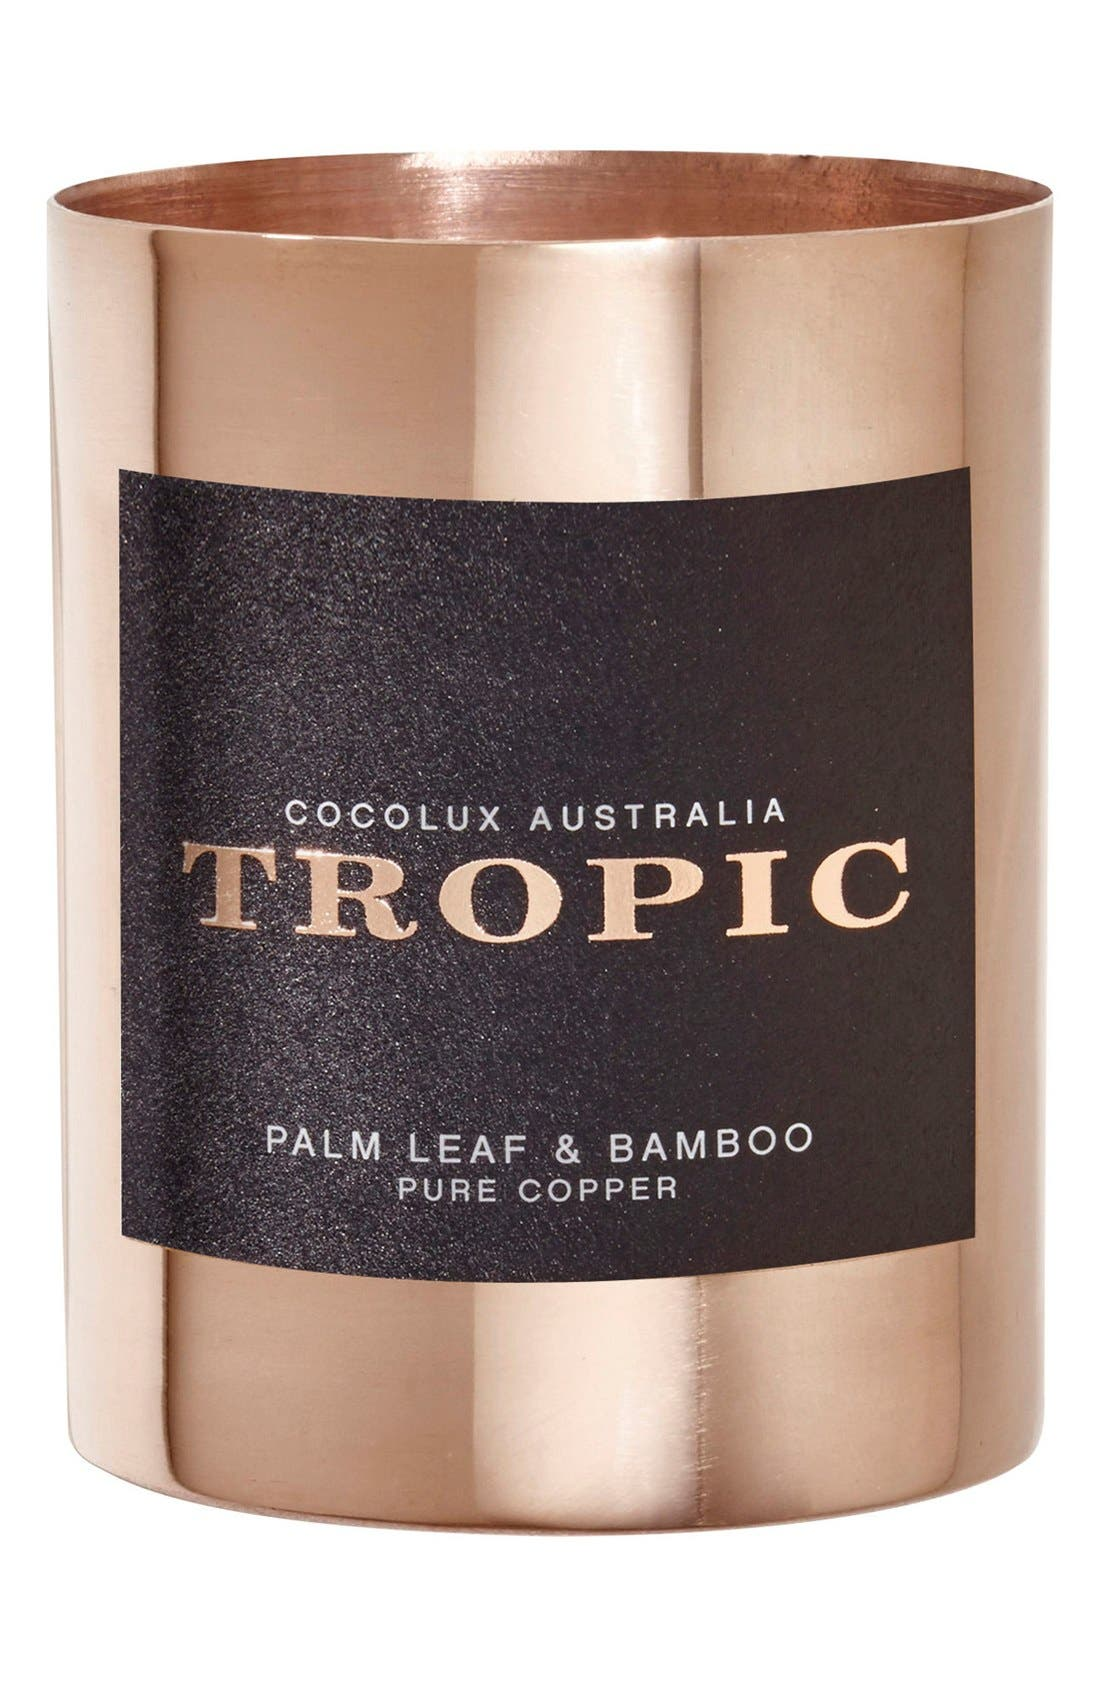 Cocolux Australia Palm Leaf & Bamboo Small Copper Candle